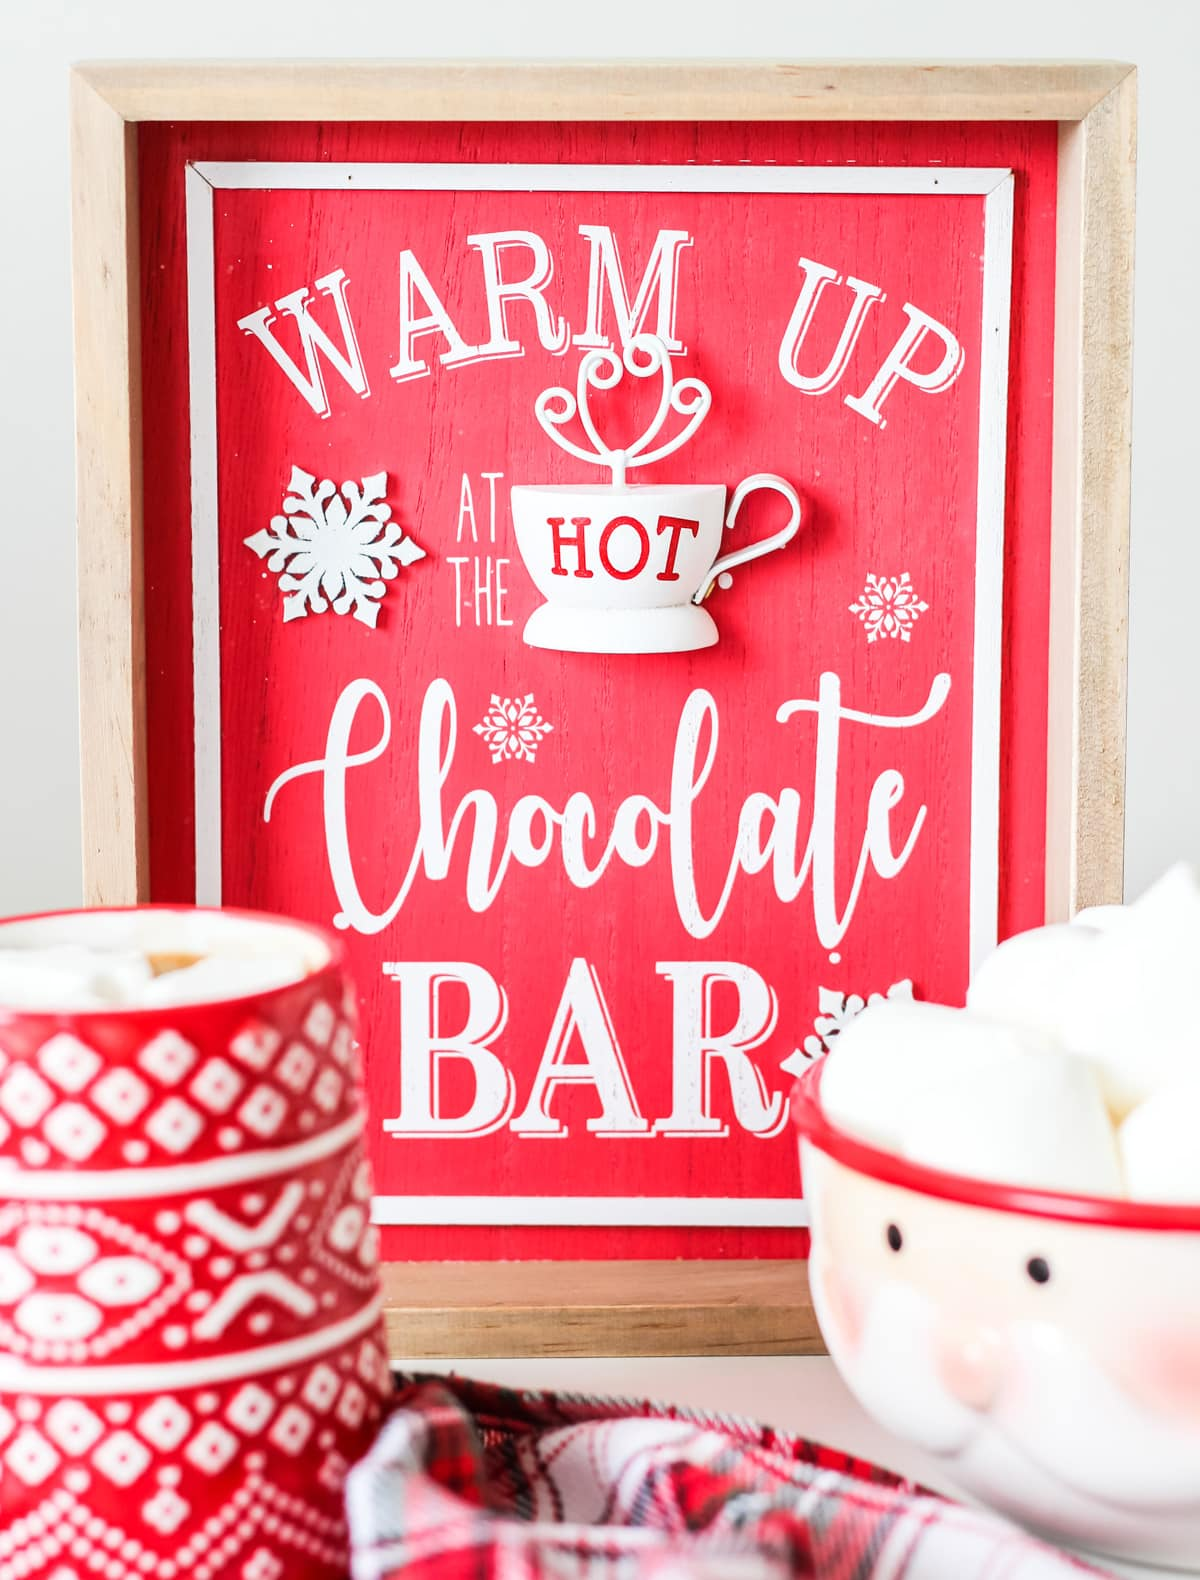 A red and white hot chocolate bar sign